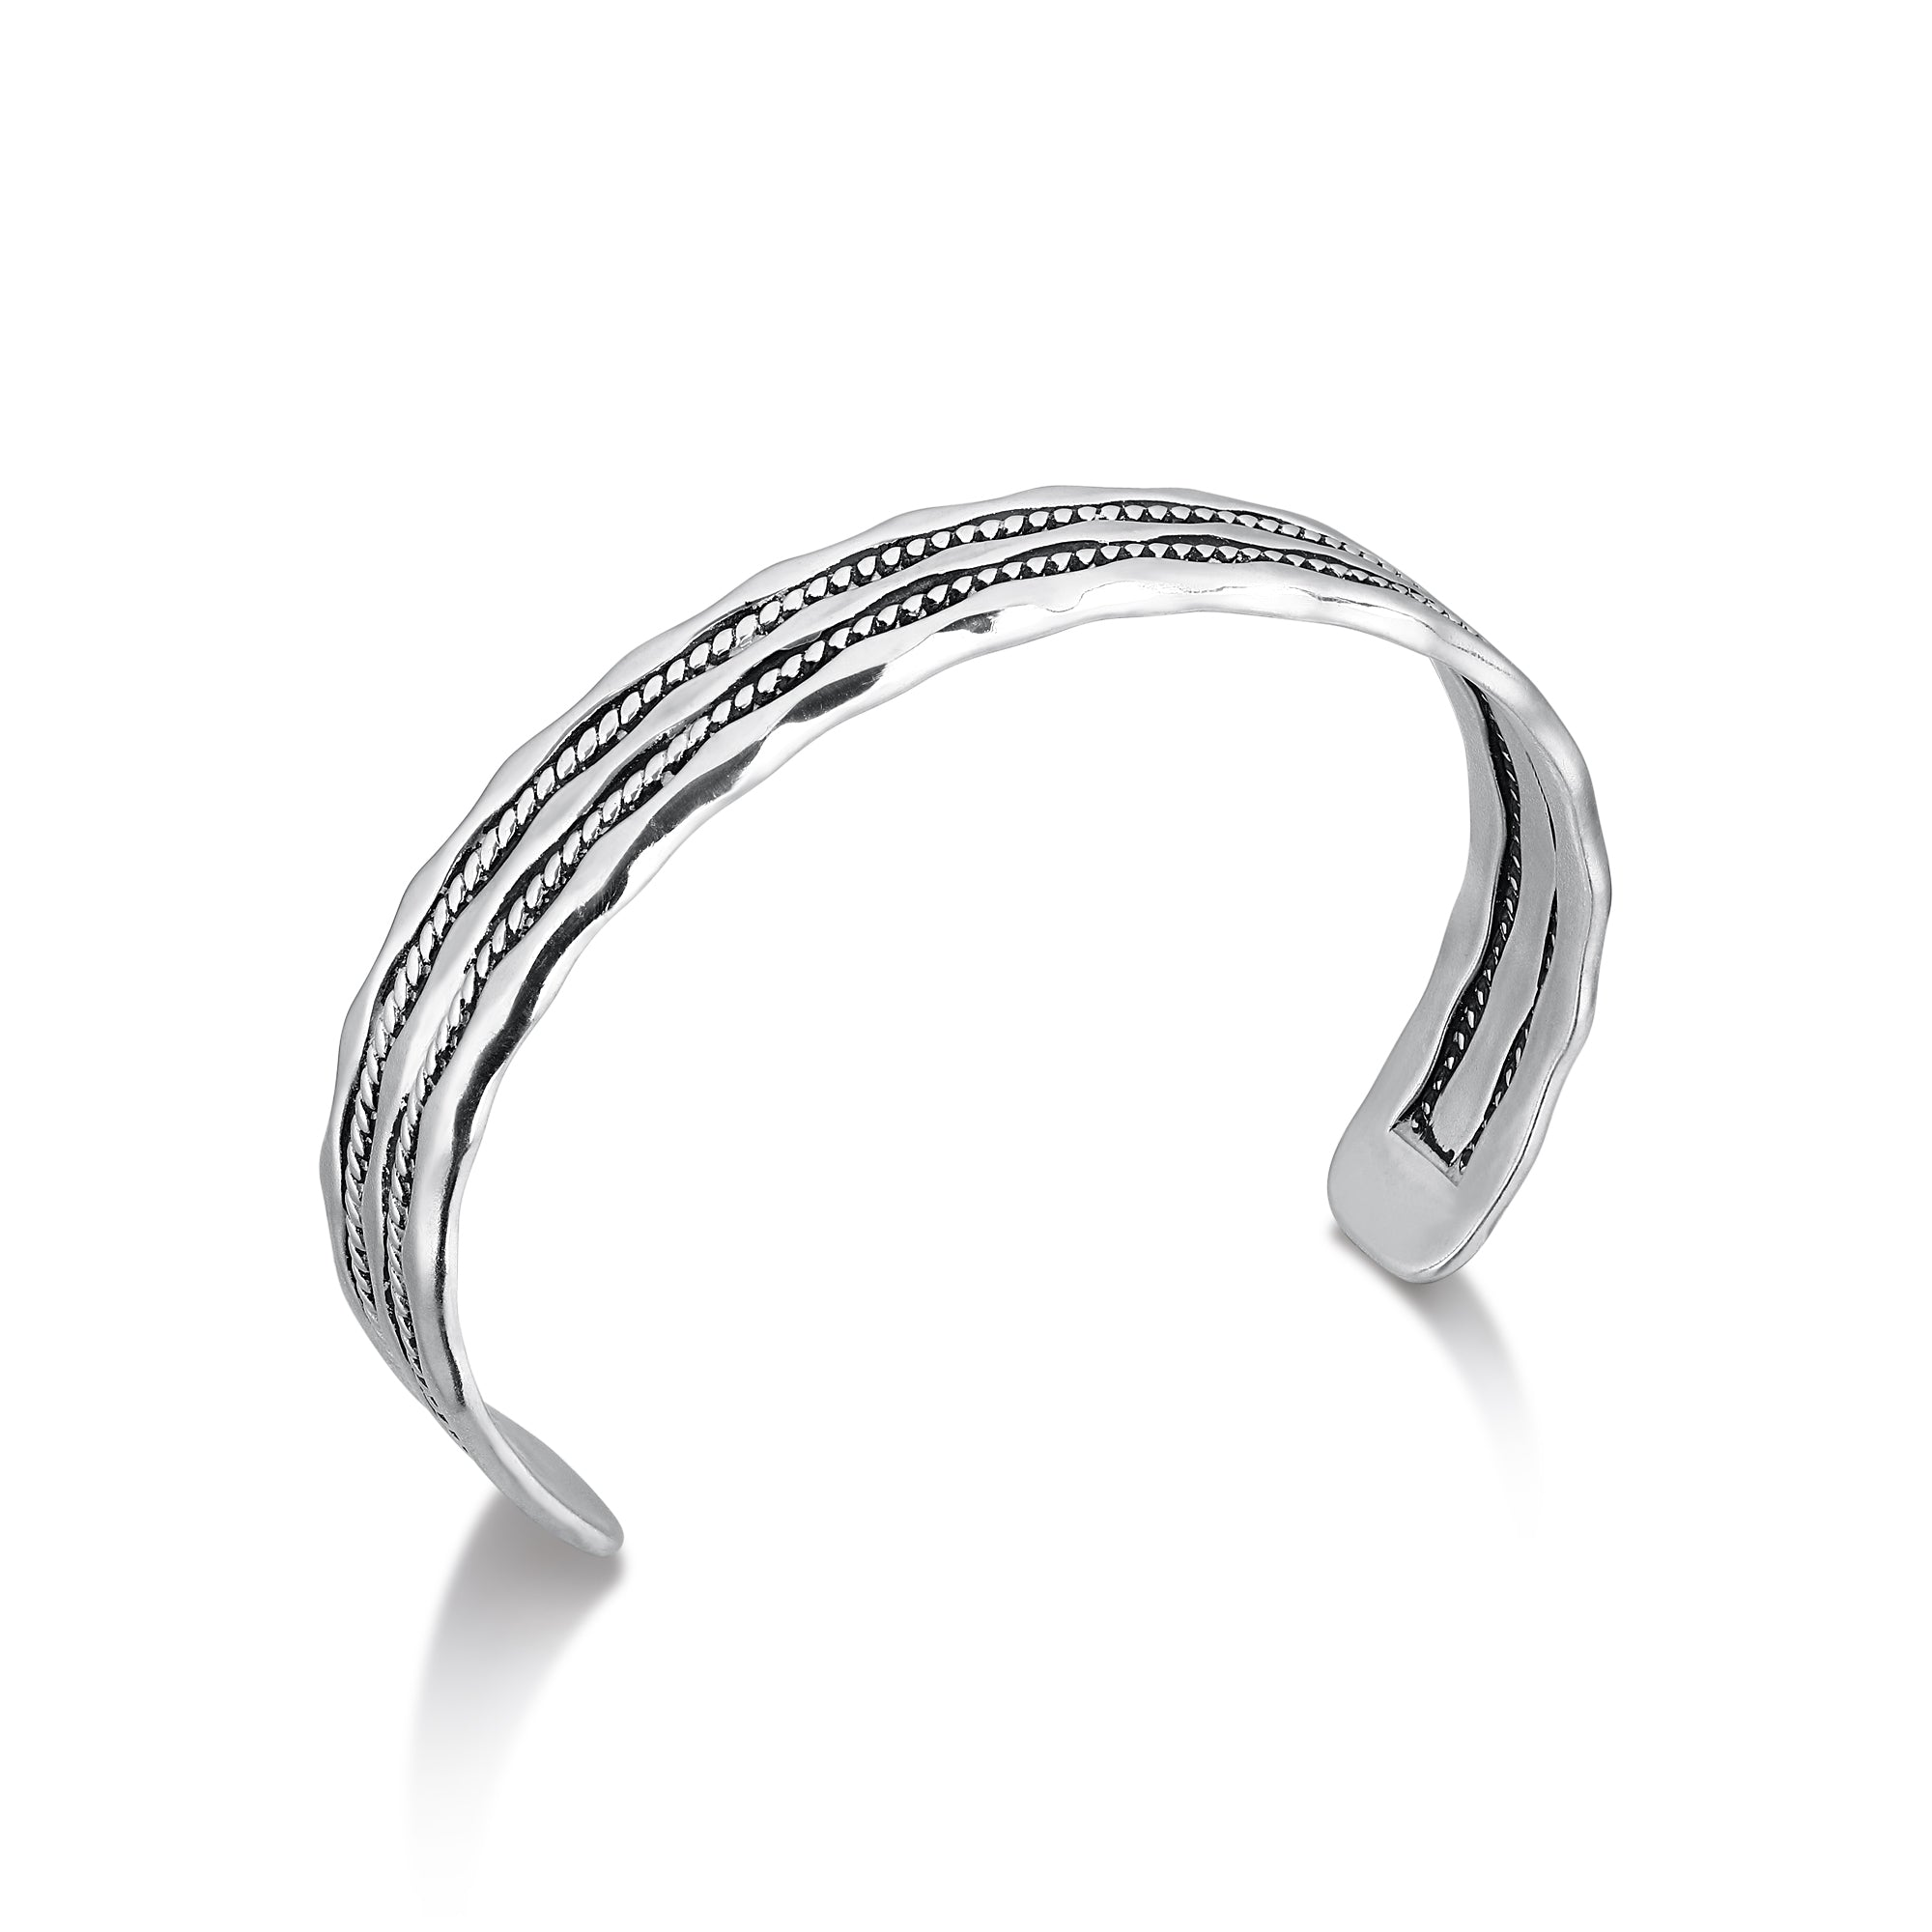 Rhodium Plated Wavy Cuff Bracelet with Wave Detail